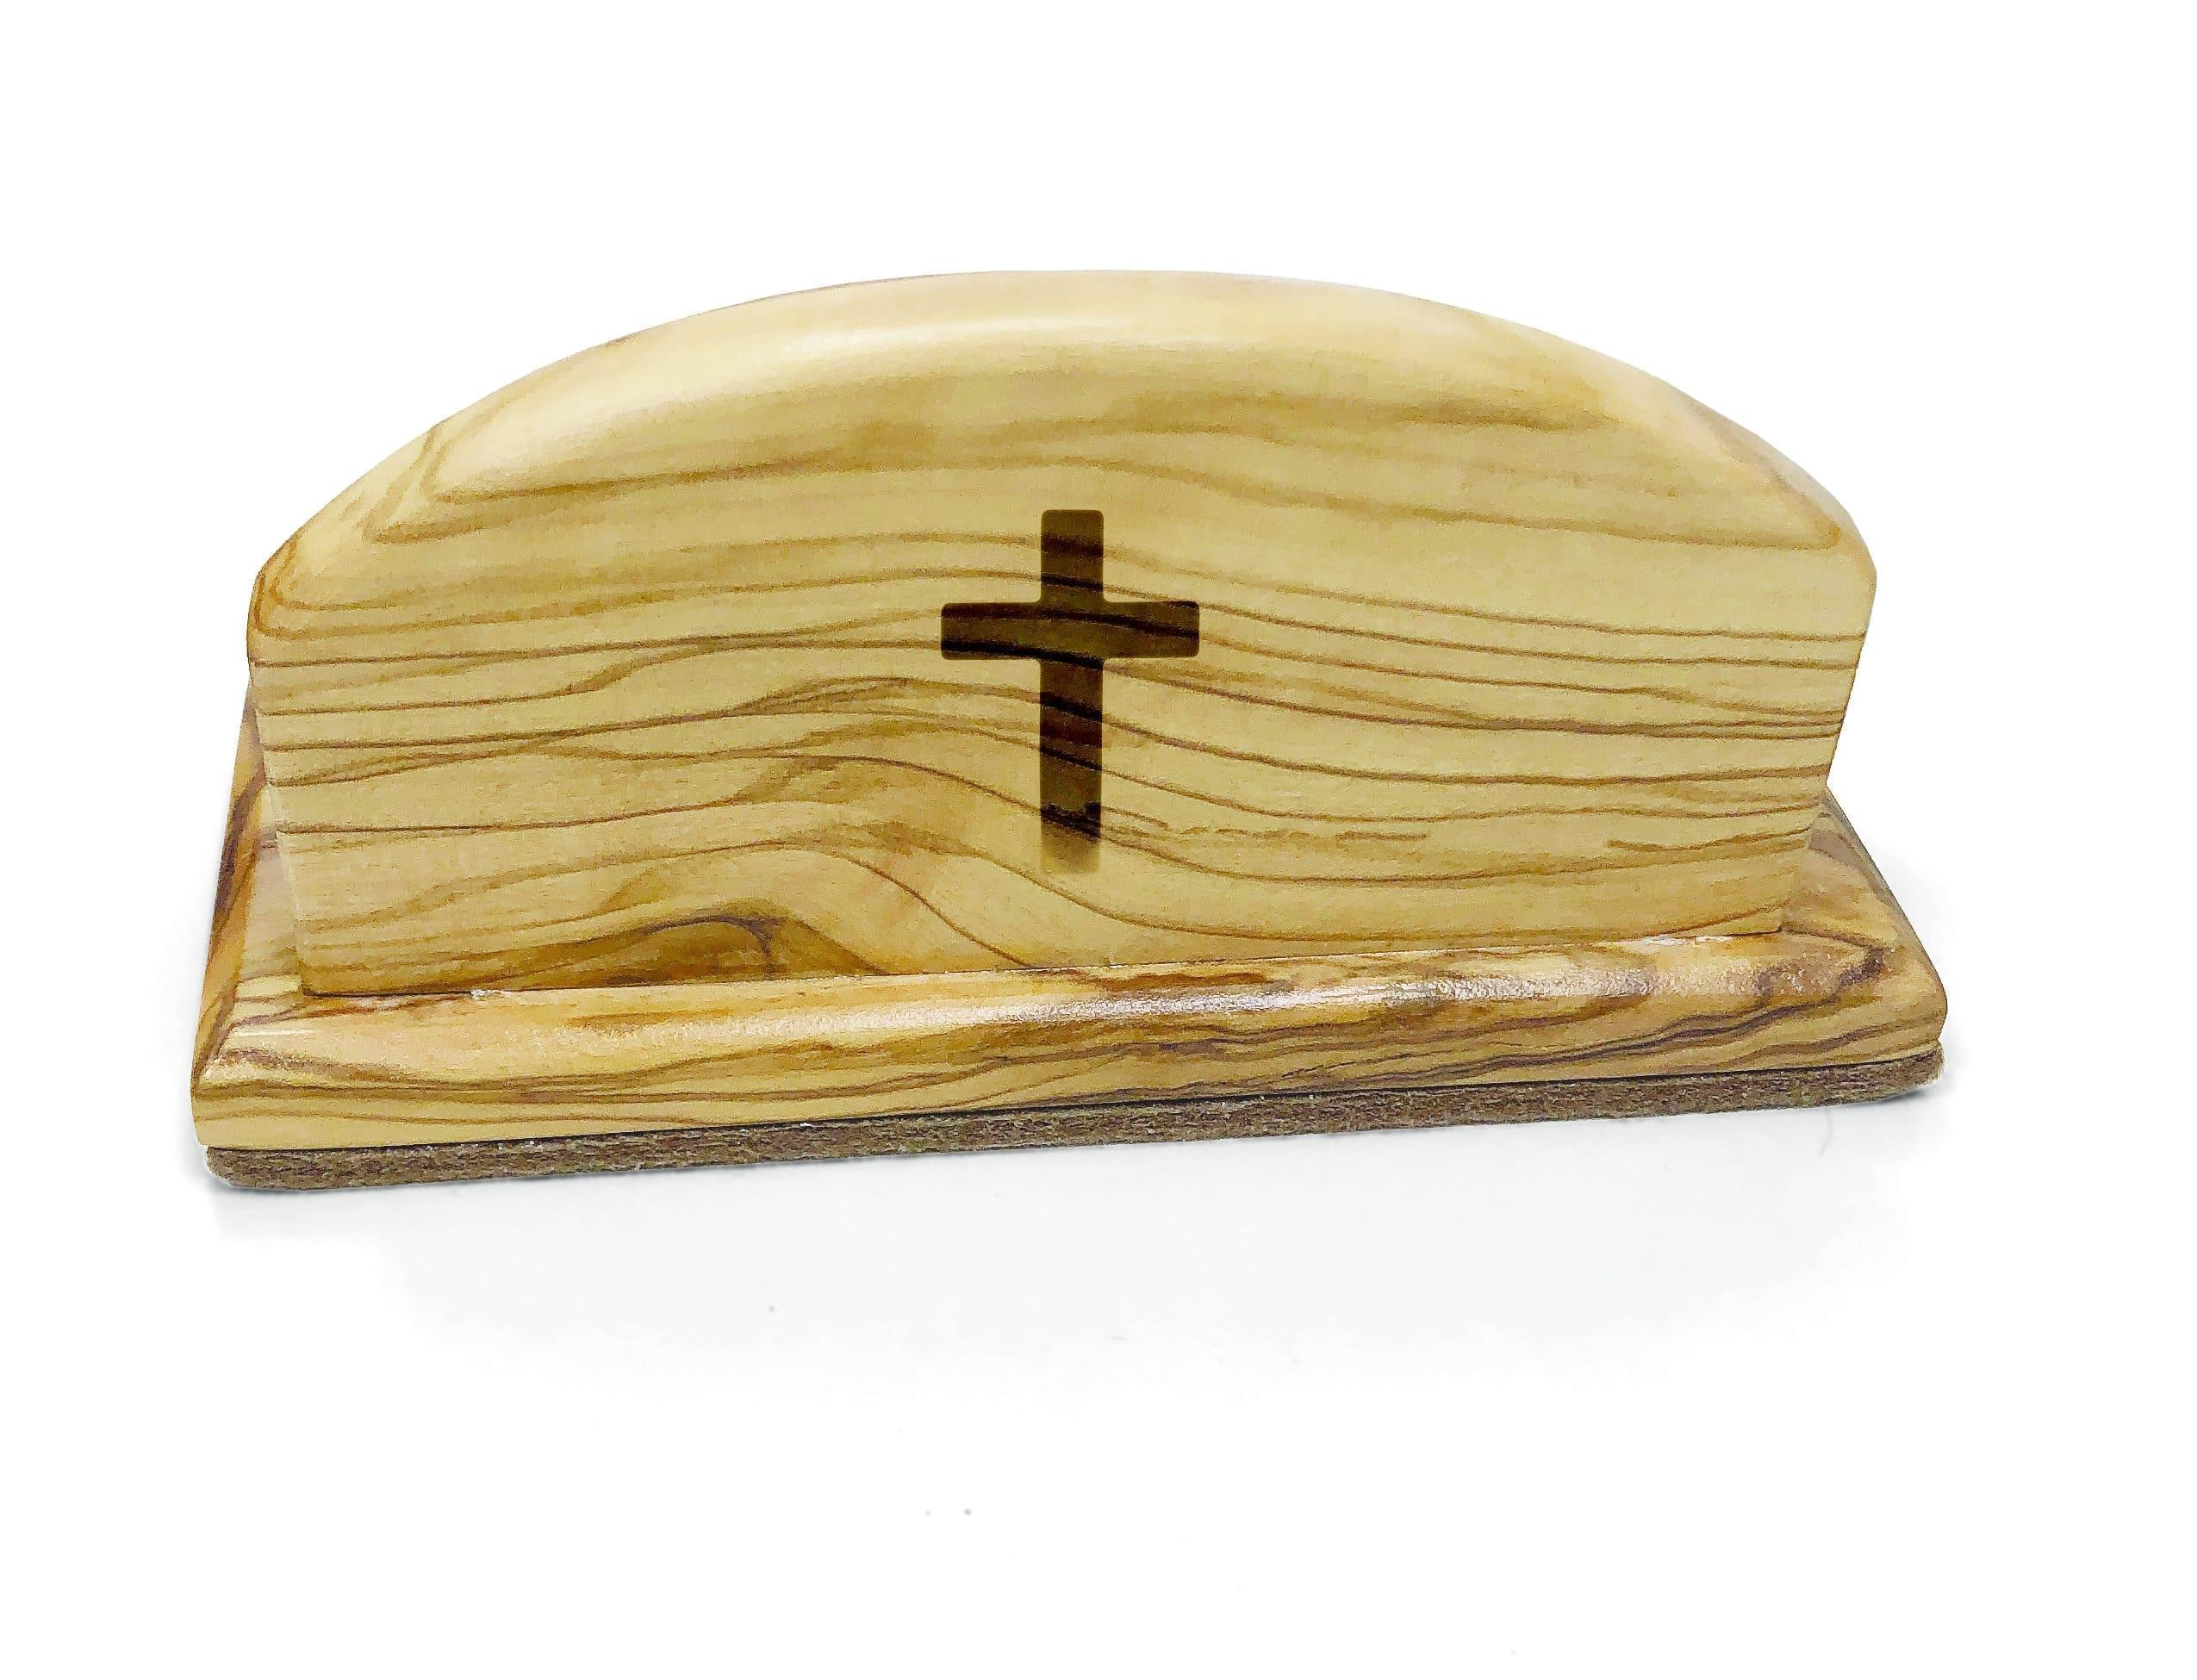 Holy Land Olive Wood Business Card Holder - Logos Trading Post, Christian Gift